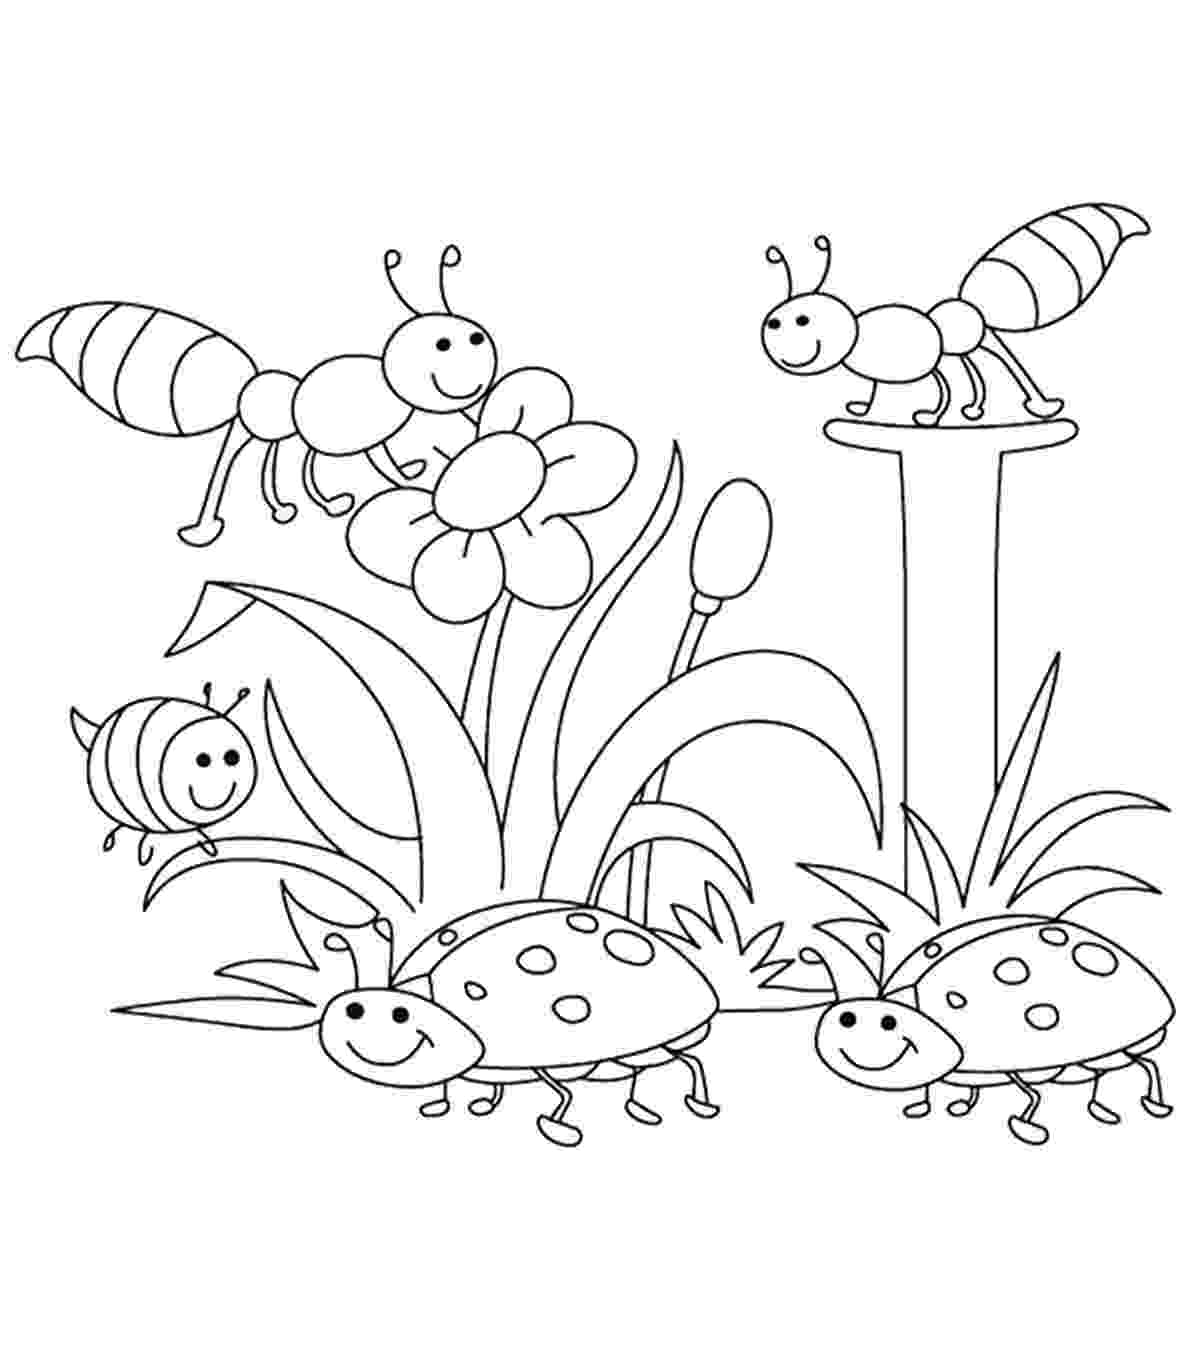 spring flower coloring pages spring flowers coloring page free printable coloring pages coloring spring flower pages